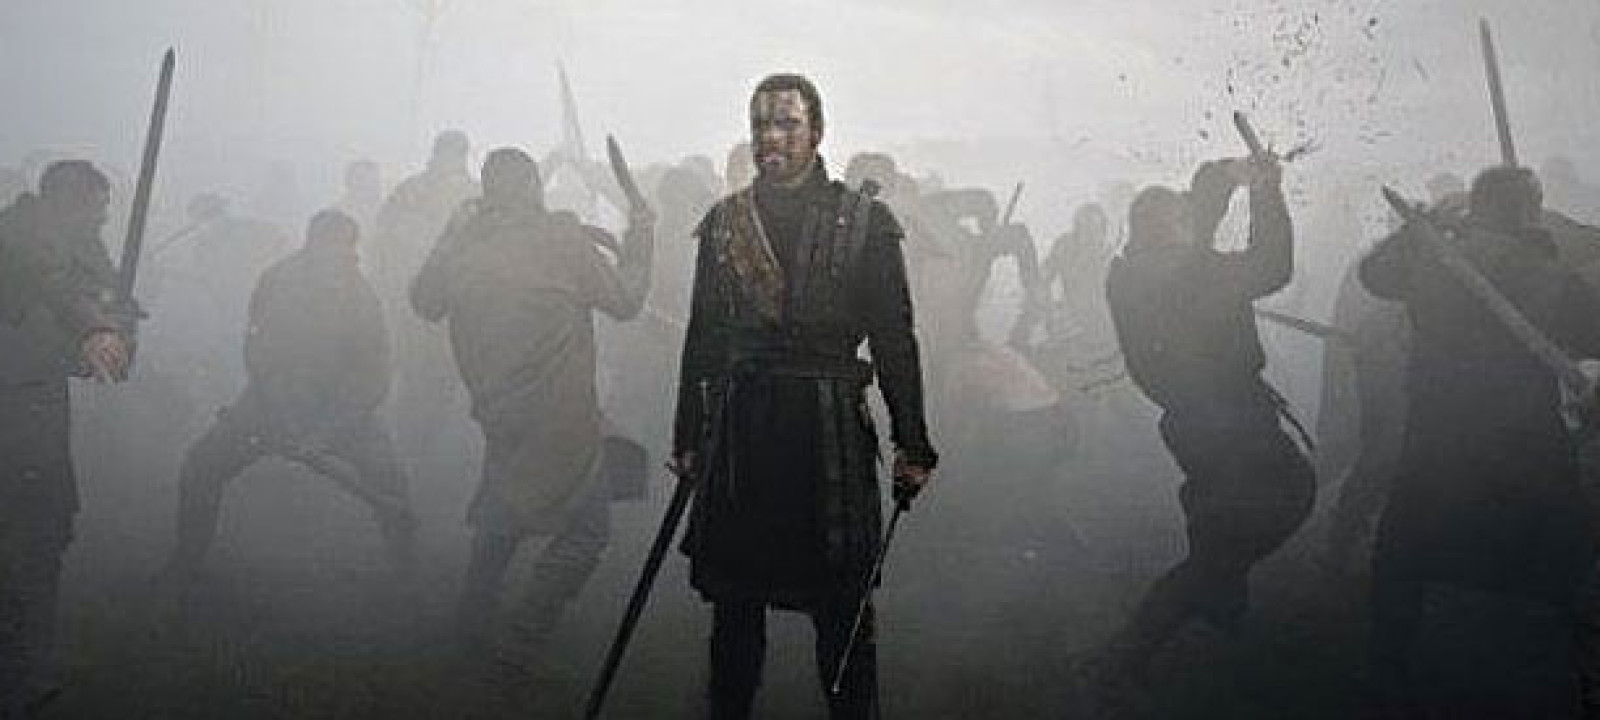 michael fassbender macbeth has post traumatic stress disorder michael fassbender in macbeth pic studio canal